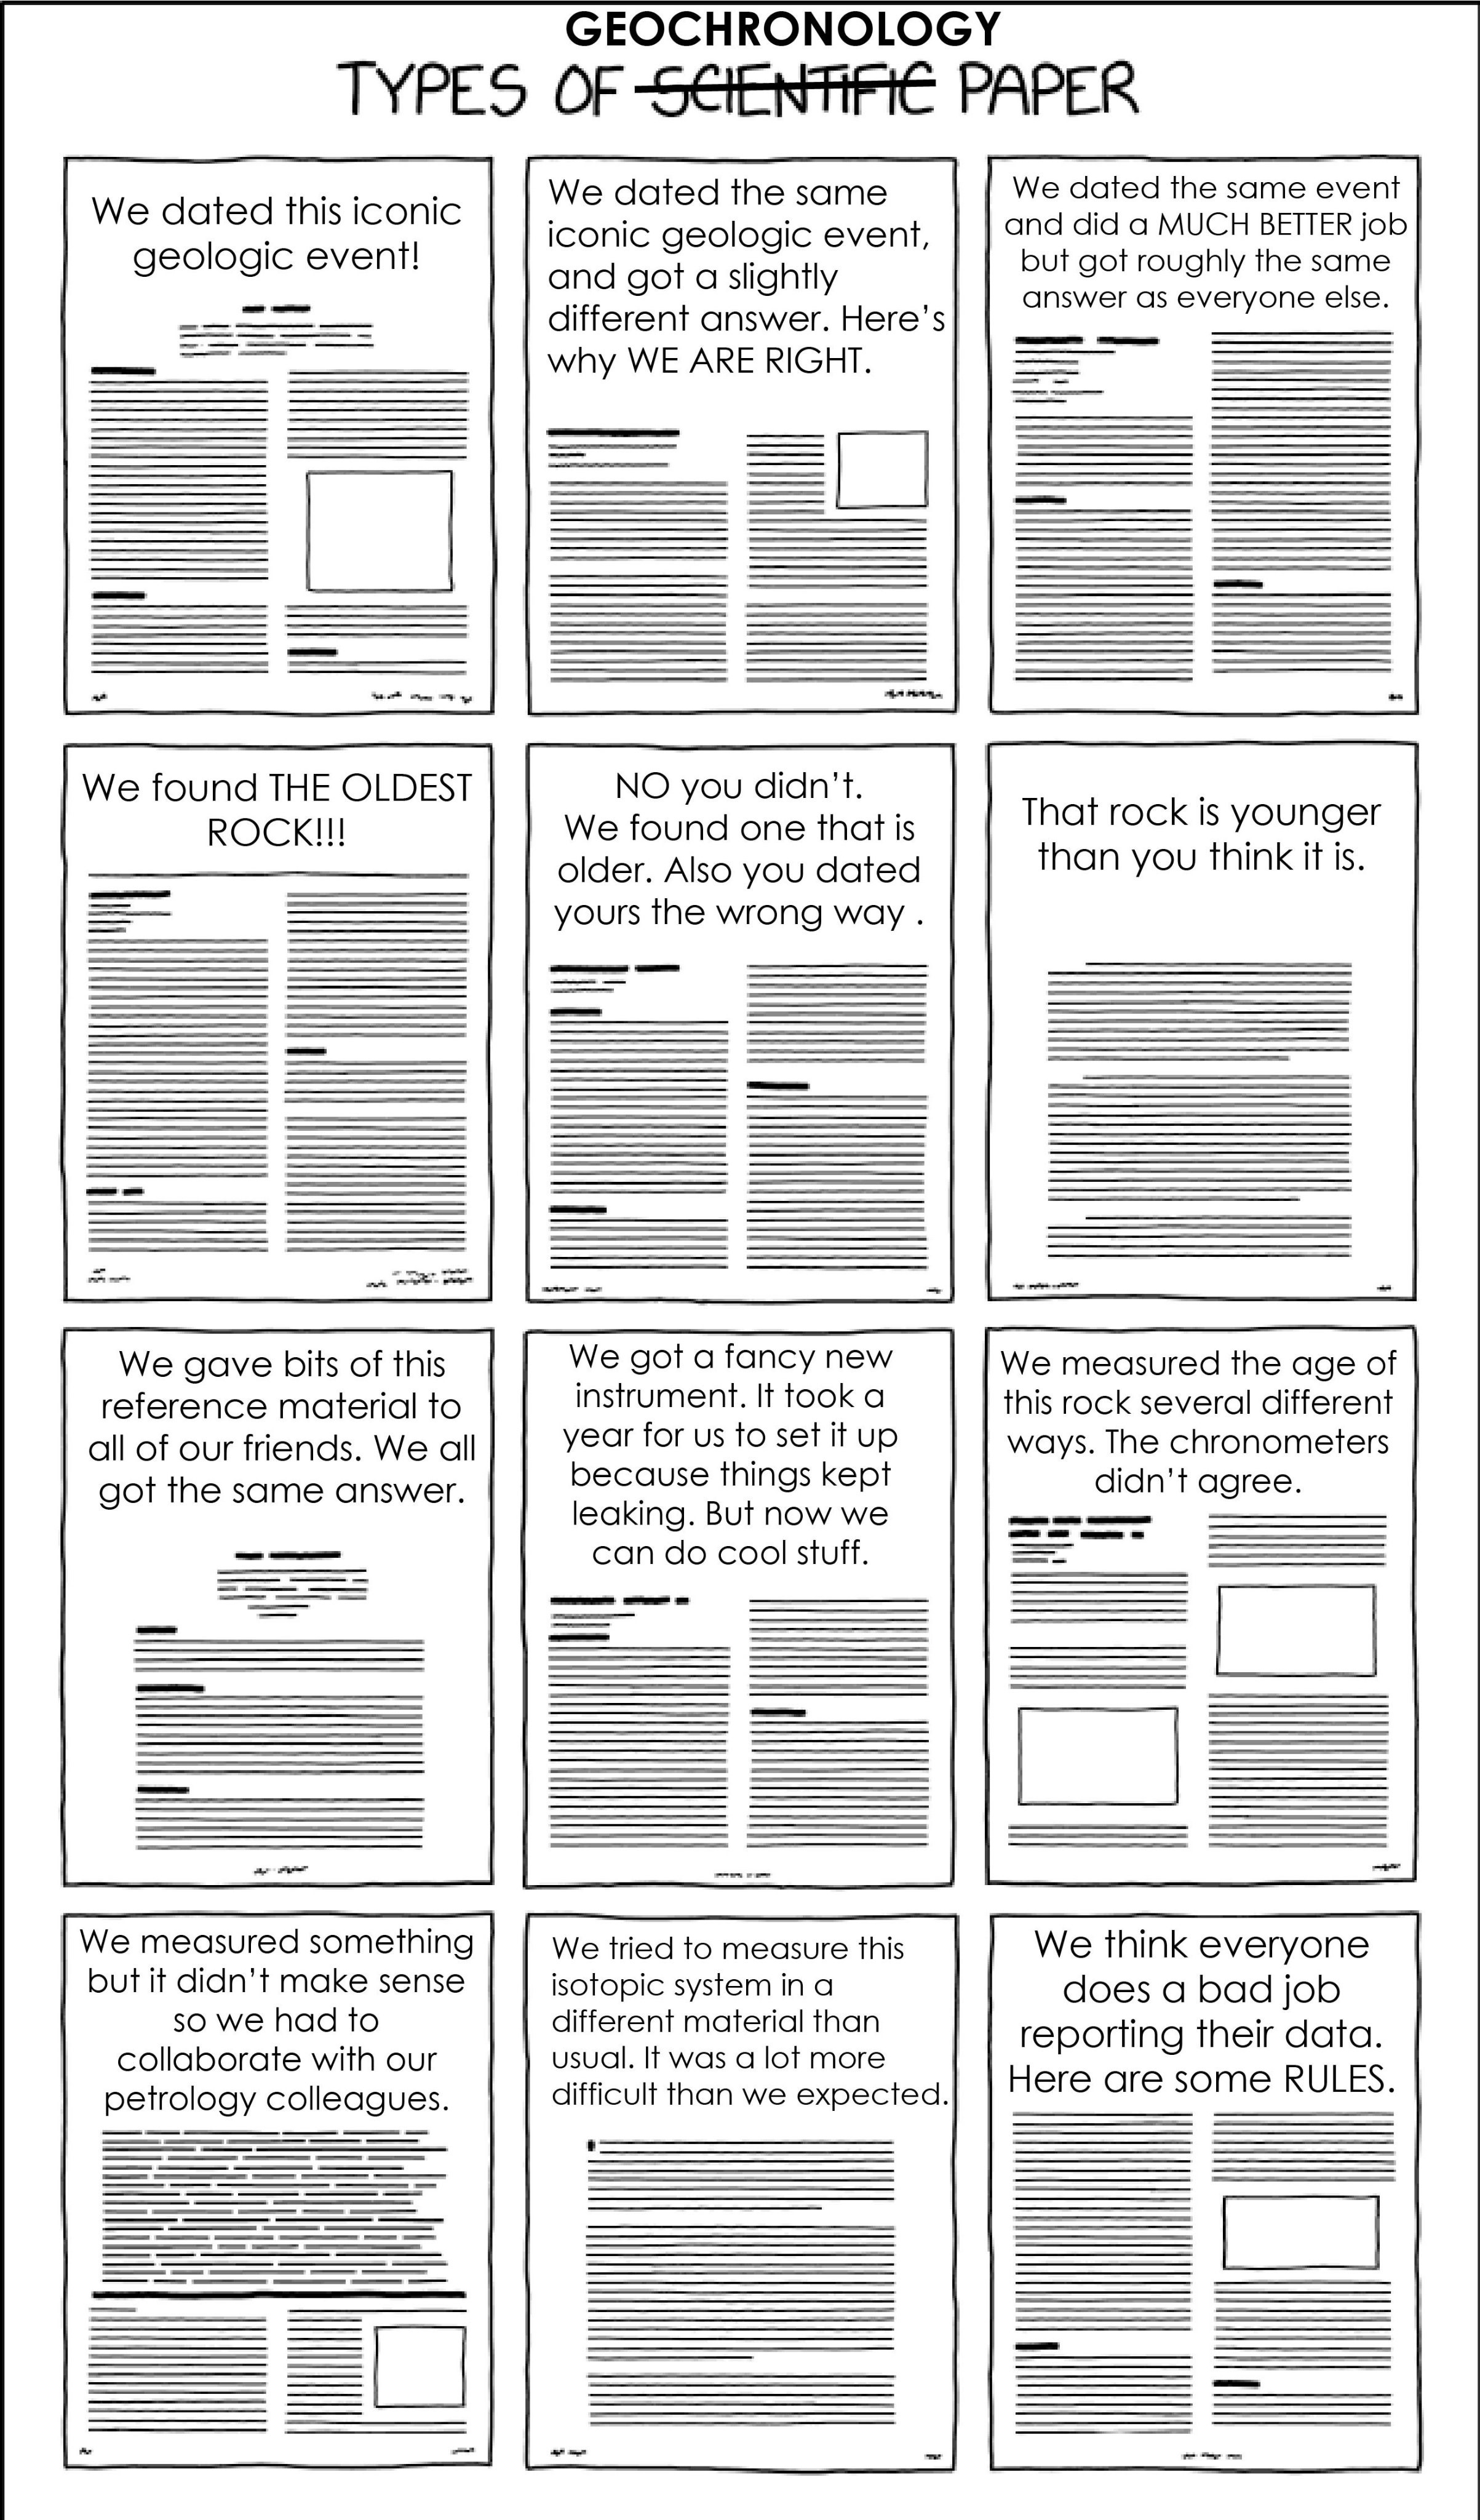 """A comic titled """"Types of scientific paper"""" with scientific crossed out and """"Geochronology"""" written above it.  The comic shows  drawings of 12 research papers, only the titles are legible.  The paper titles, listed left to right, top to bottom are: """"We dated this iconic geologic event!"""" """"We dated the same iconic geologic event, and got a slightly different answer. Here's why WE ARE RIGHT."""" """"We dated the same event and did a MUCH BETTER job but got roughly the same answer as everyone else."""" """"We found THE OLDEST ROCK!!!"""" """"NO you didn't. We found one that is older and you dated yours the wrong way."""" """"That rock is younger than you think it is."""" """"We gave bits of this reference material to all of our friends. We all got the same answer."""" """"We got a fancy new instrument. It took years for us to set it up because things kept leaking. But now we can do cool stuff."""" """"We measured the age of this rock several different ways. The chronometers didn't agree."""" """"We measured something but it didn't make sense so we had to collaborate with our petrology colleagues."""" """"We tried to measure this isotopic system in a different material than usual. It was a lot more difficult than we expected."""" """"We think everyone does a bad job reporting their data. Here are some RULES."""""""